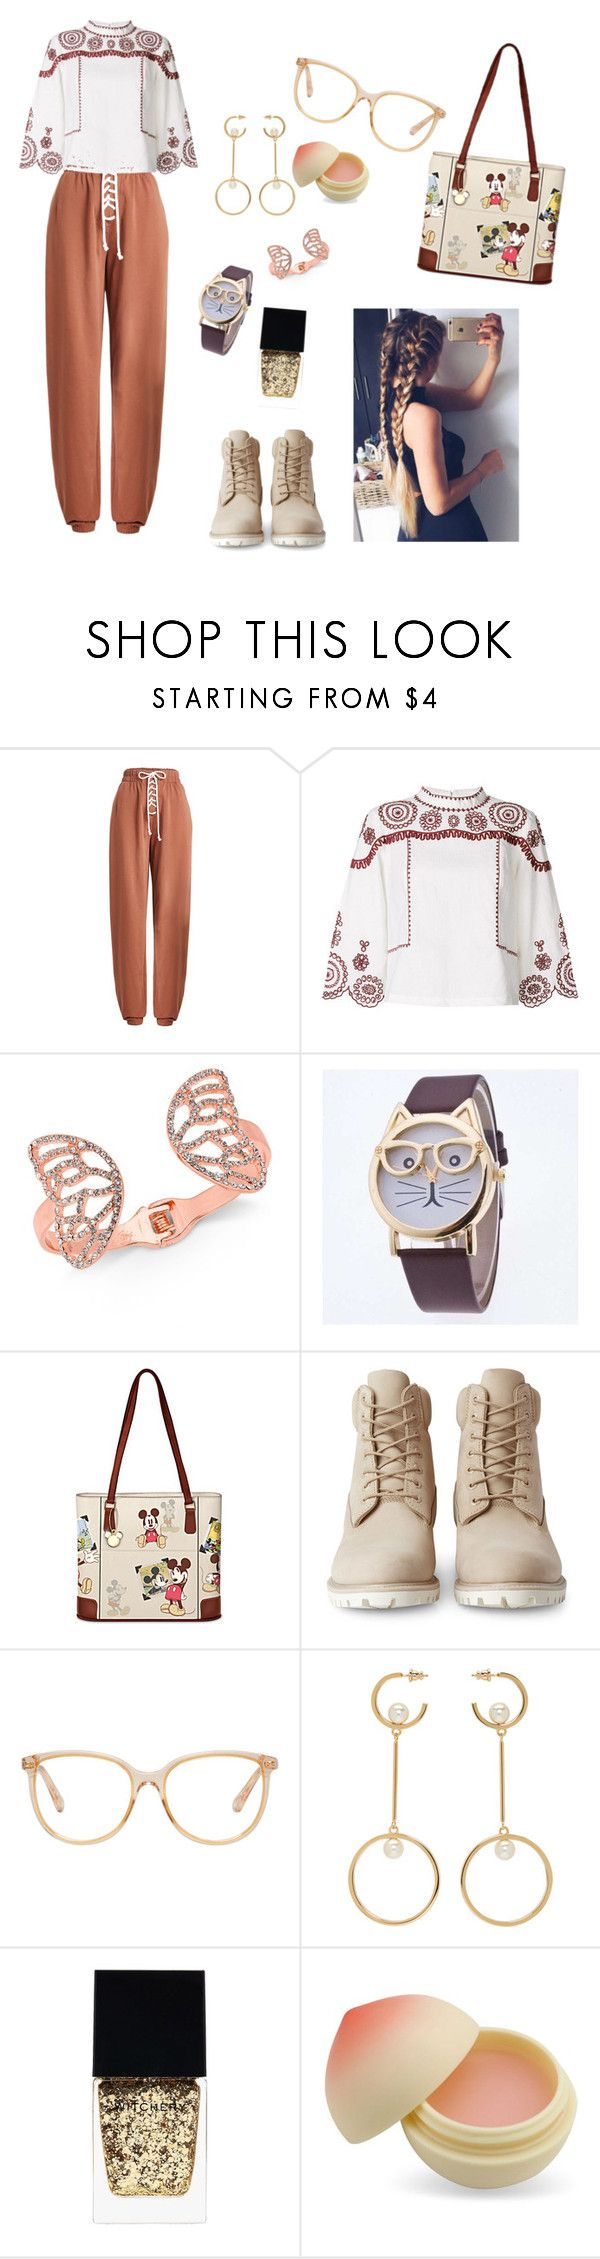 """""""Simply"""" by sisterrn ❤ liked on Polyvore featuring interior, interiors, interior design, home, home decor, interior decorating, Puma, M.i.h Jeans, Thalia Sodi and The Bradford Exchange"""